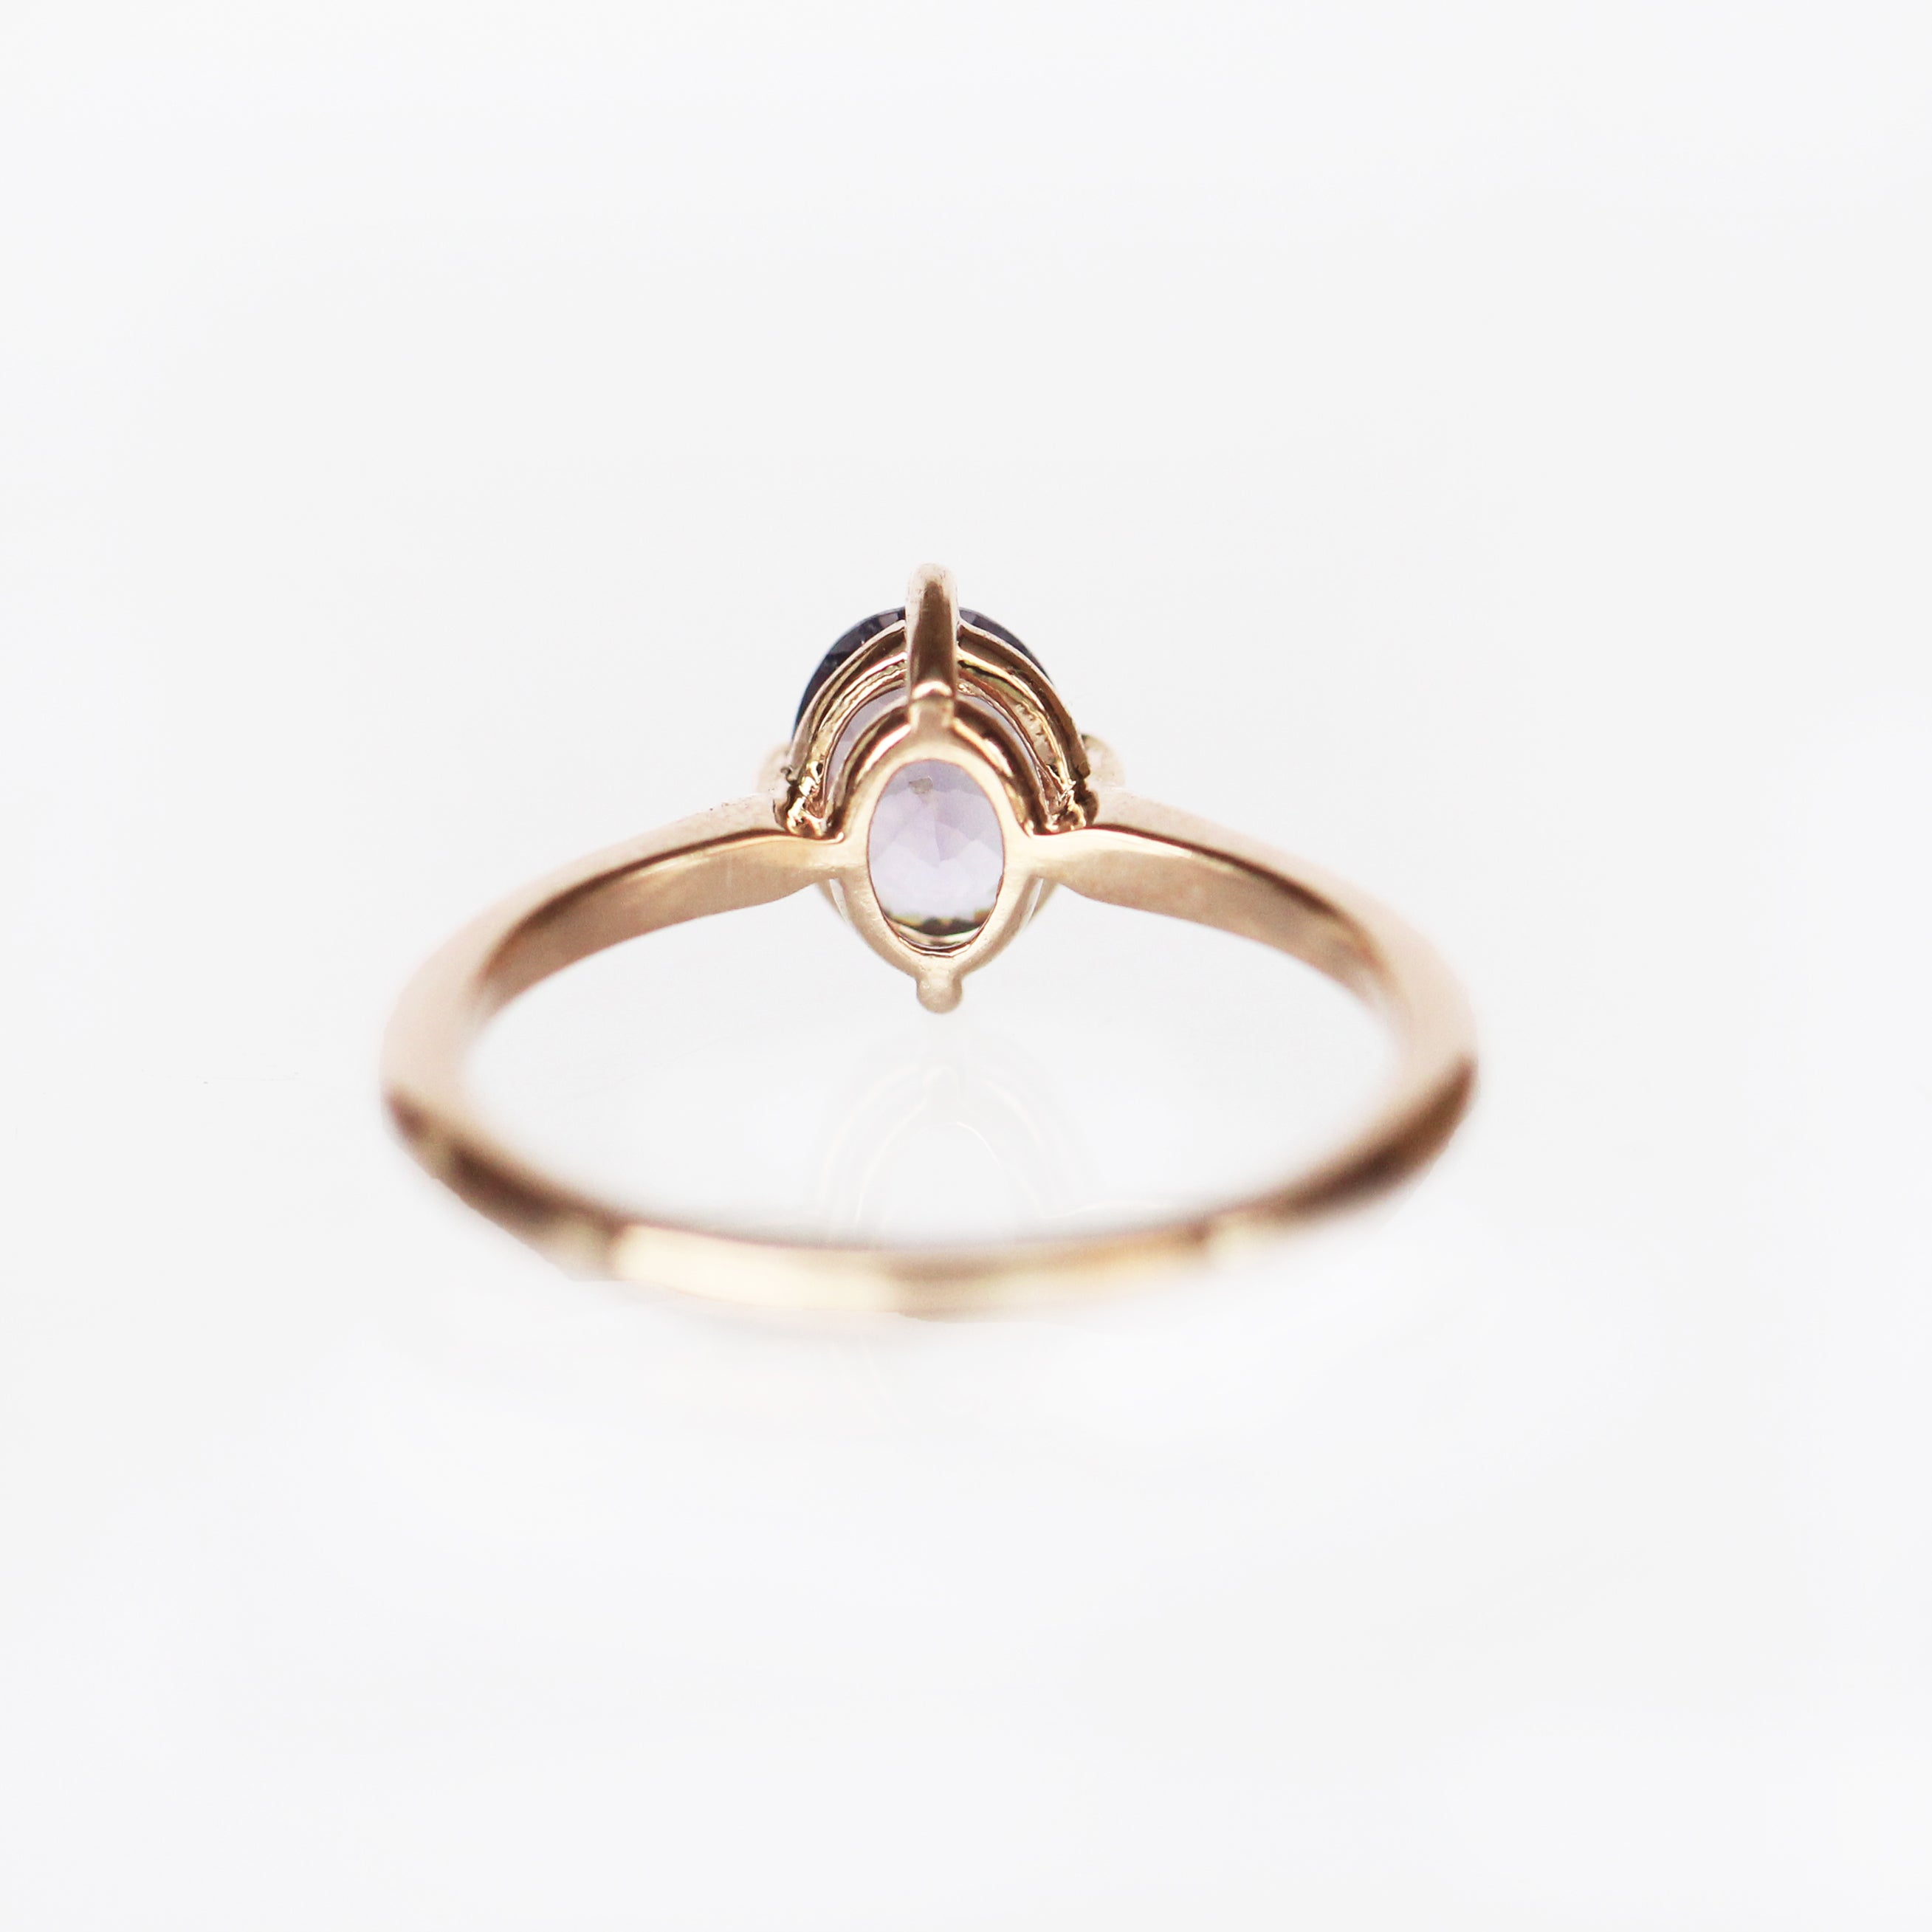 West Ring with a Lavender Sapphire in 10k Rose Gold - Ready to Size and Ship - Celestial Diamonds ® by Midwinter Co.